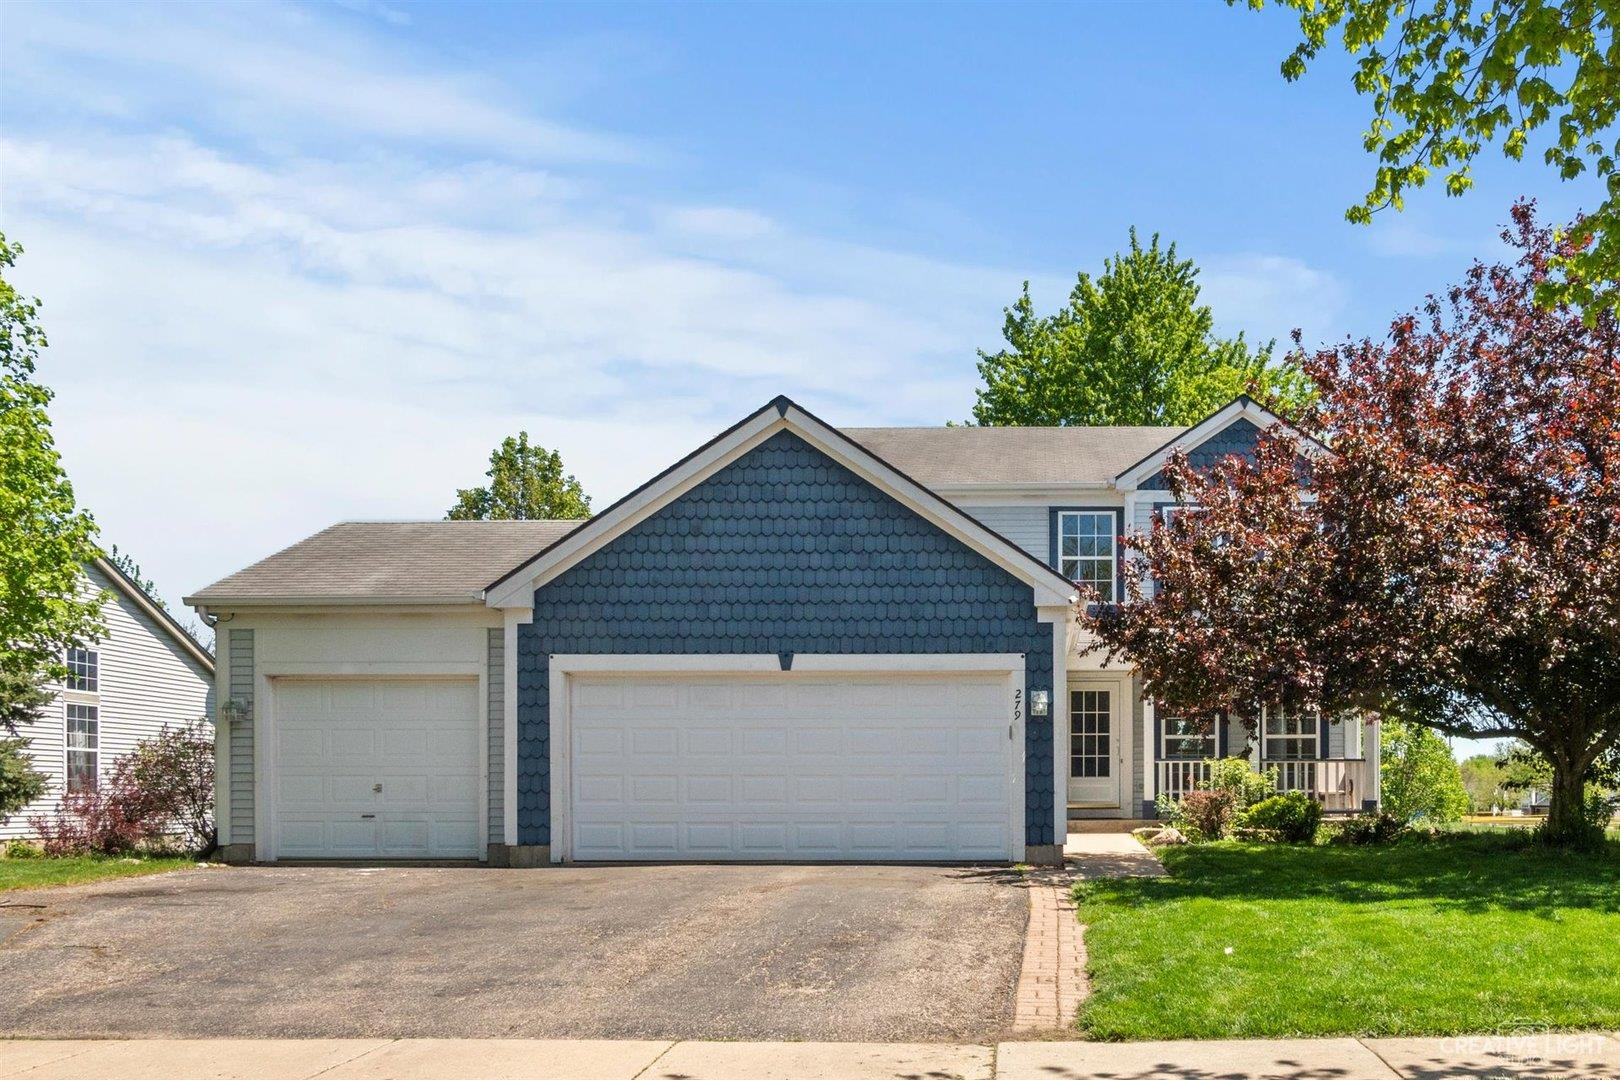 279 Paine Street, South Elgin, IL 60177 - #: 11079828